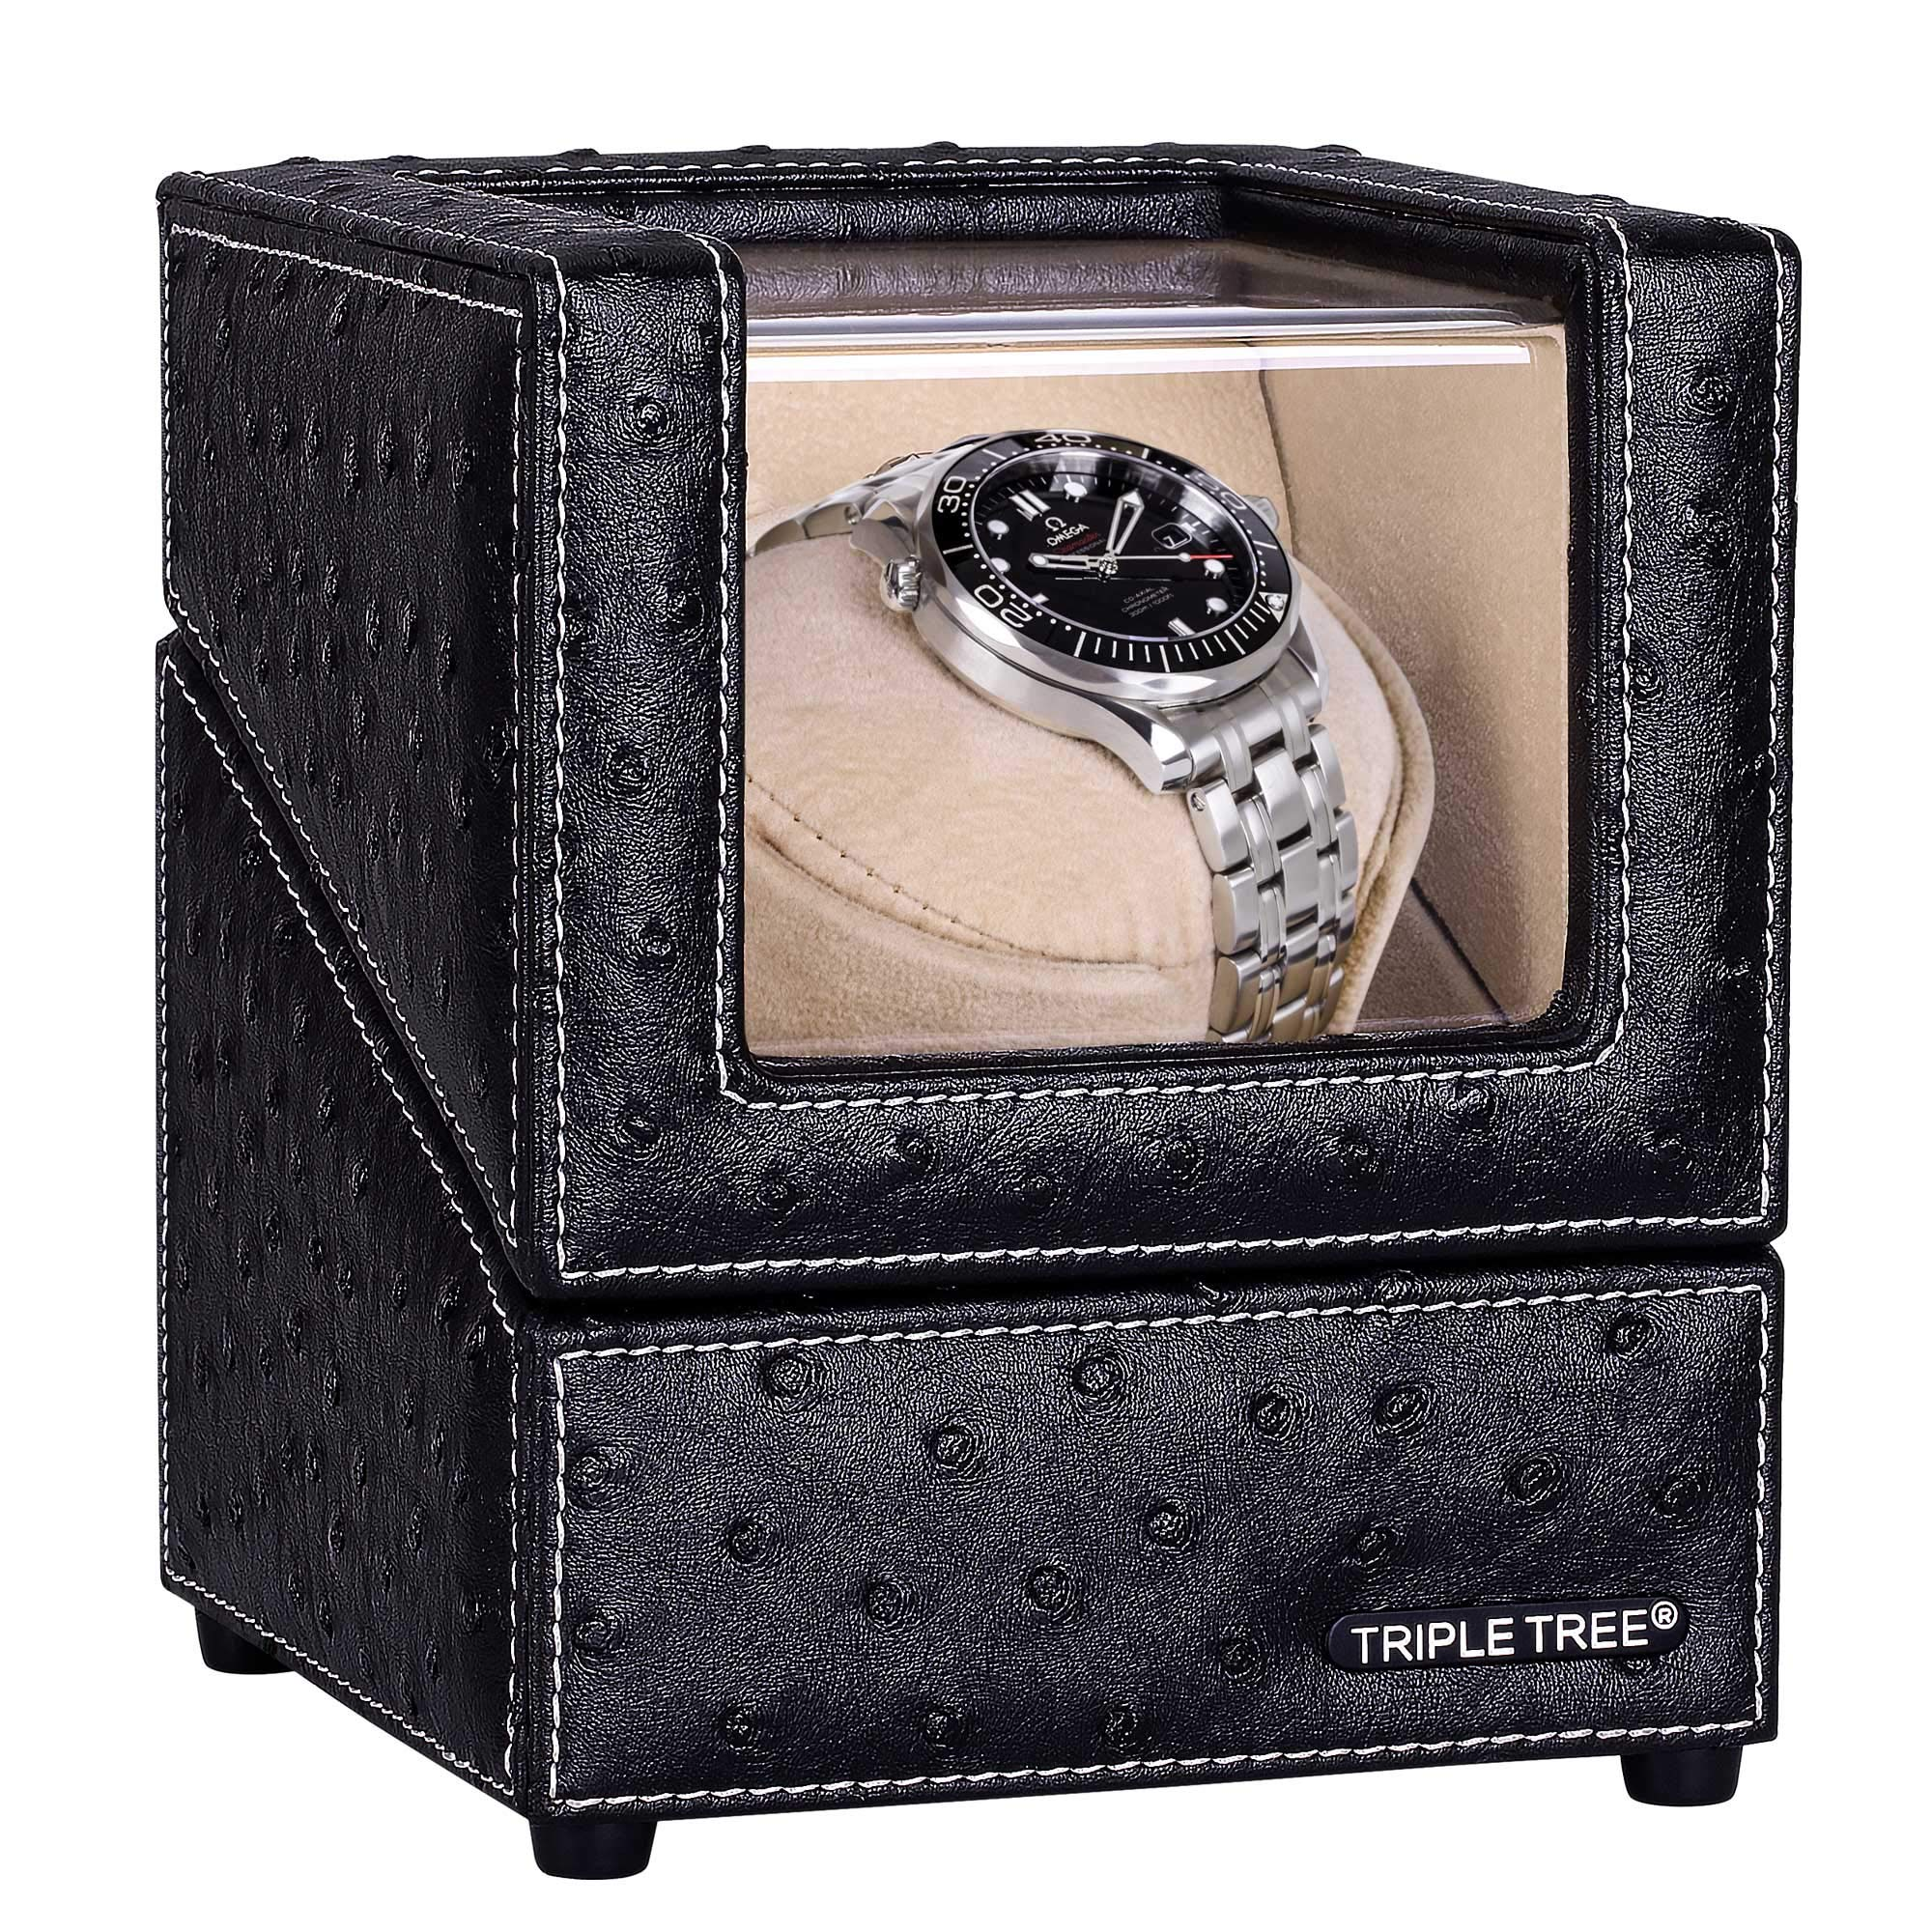 Single Watch Winder Newly Upgraded, with Flexible Plush Pillow, in Wood Shell and Black Leather, Japanese Motor, 4 Rotation Mode Setting, Fit Lady and Man Automatic Watch by TRIPLE TREE